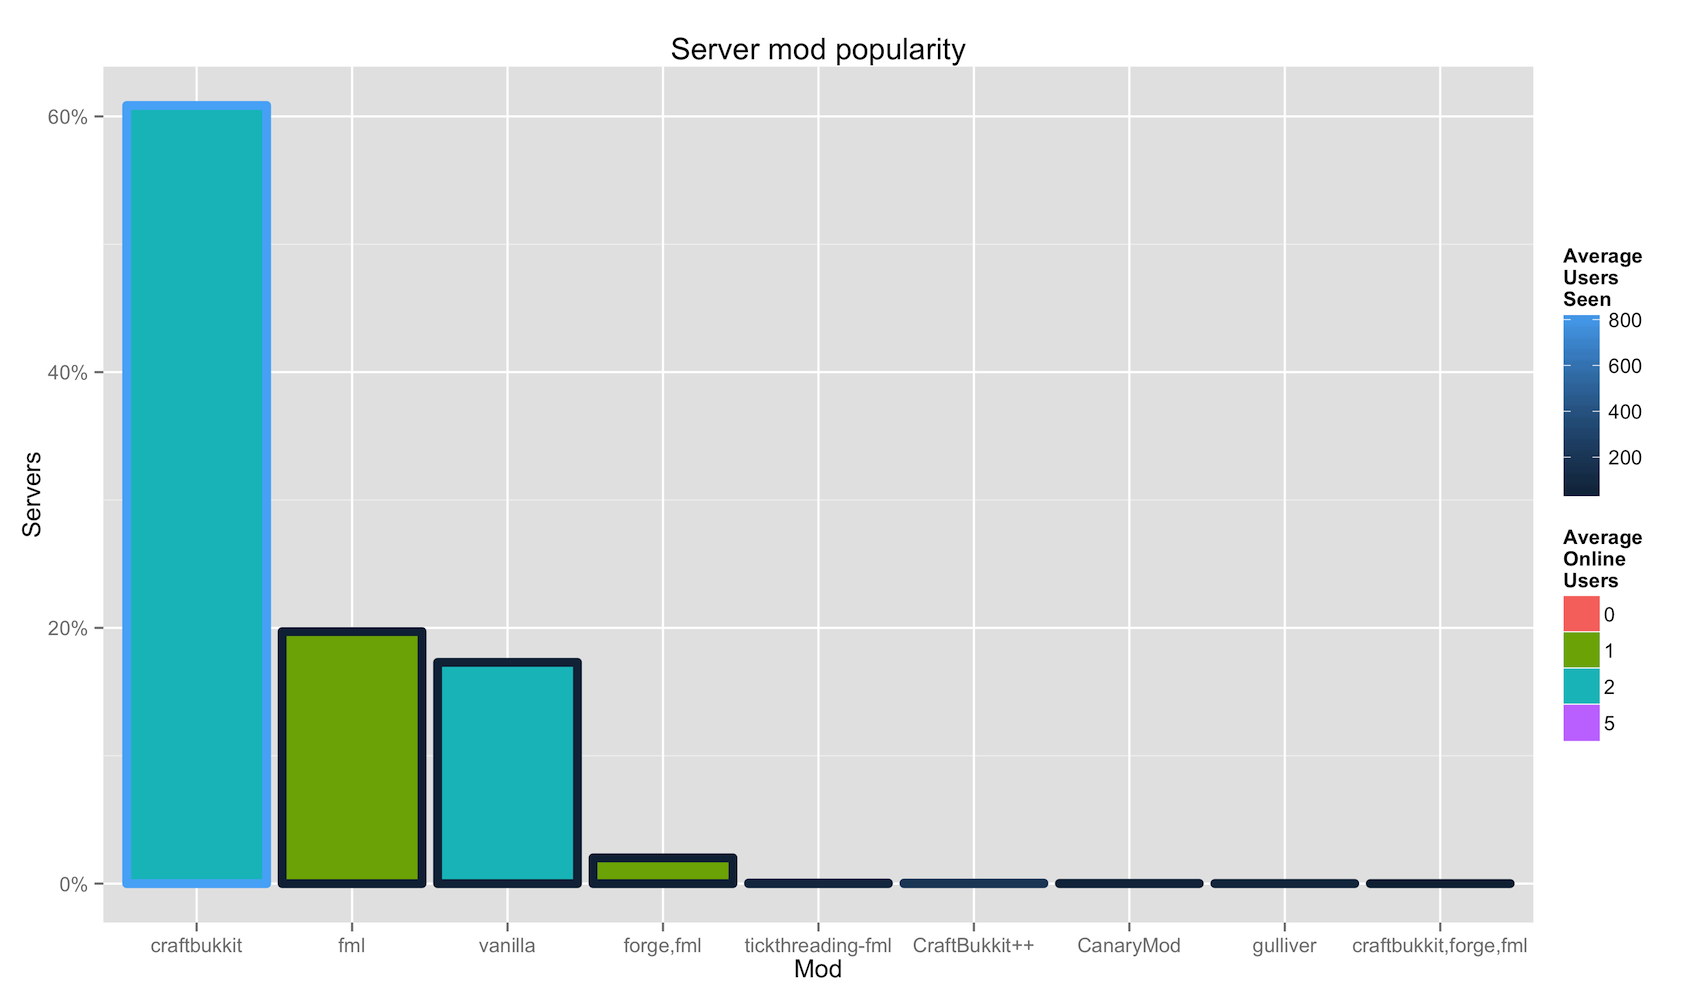 server mod popularity